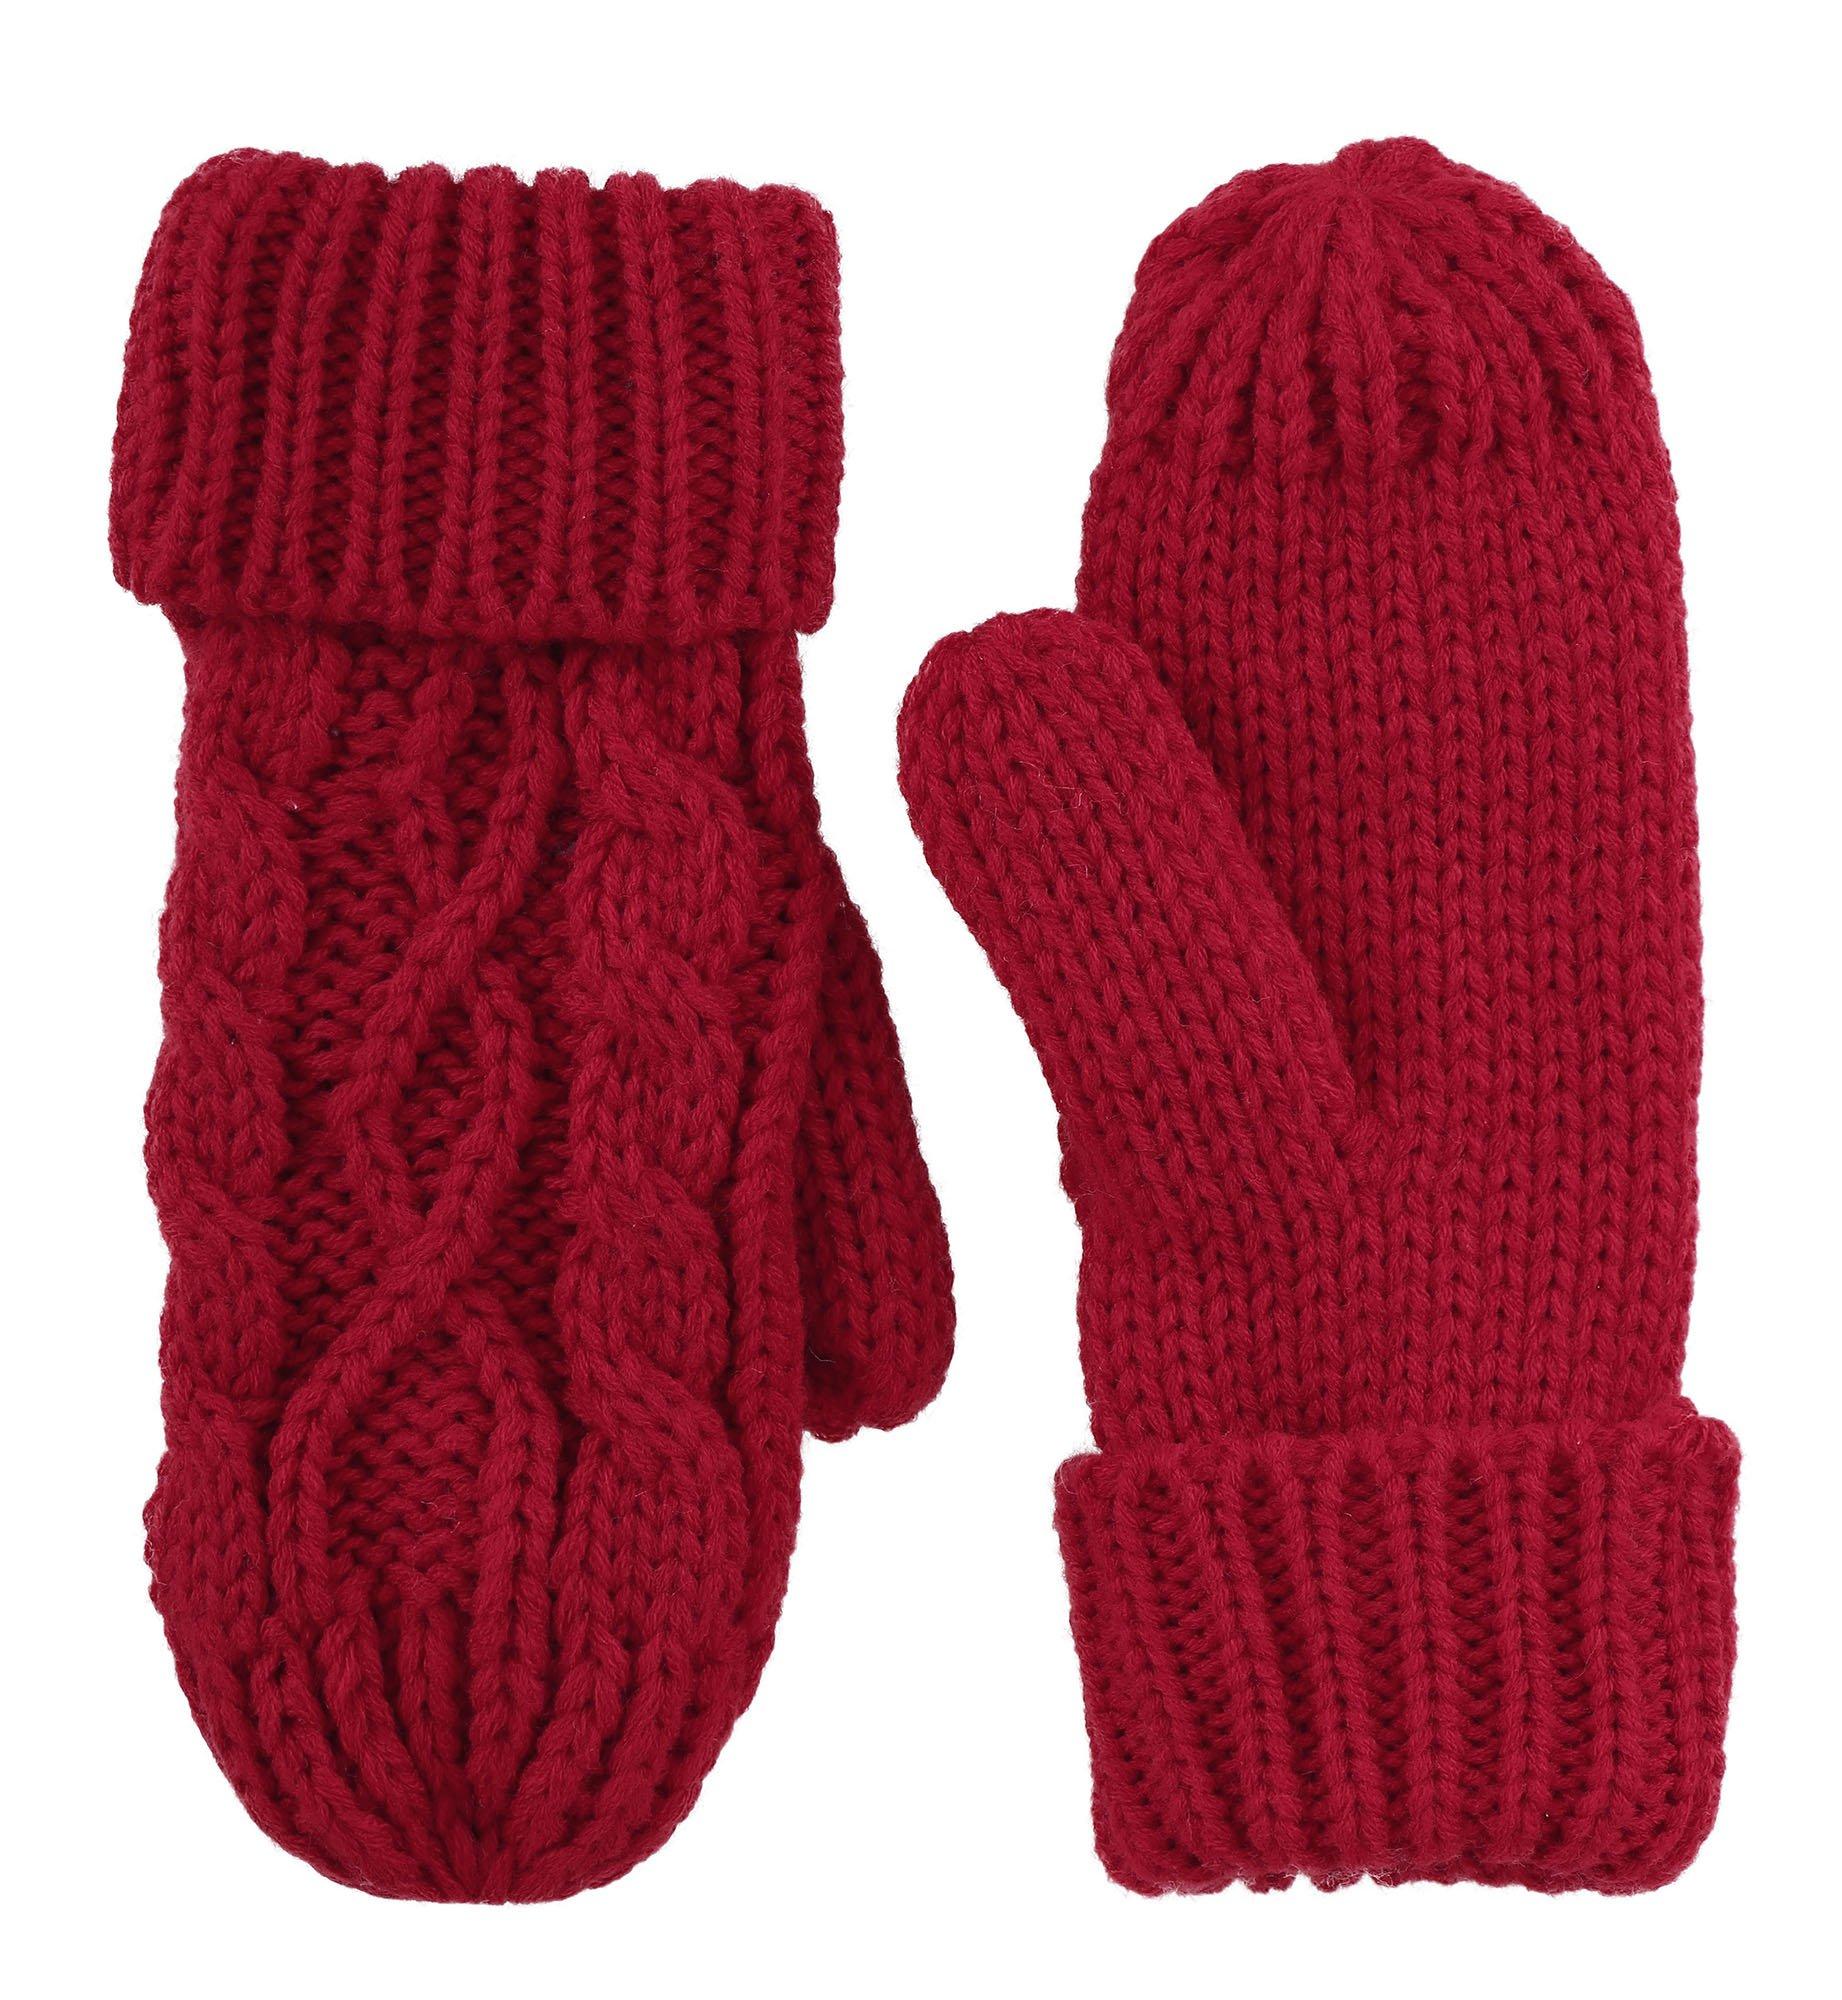 ANDORRA - 3 in 1 - Soft Warm Thick Cable Hat Scarf & Gloves Winter Set, Red by Andorra (Image #5)